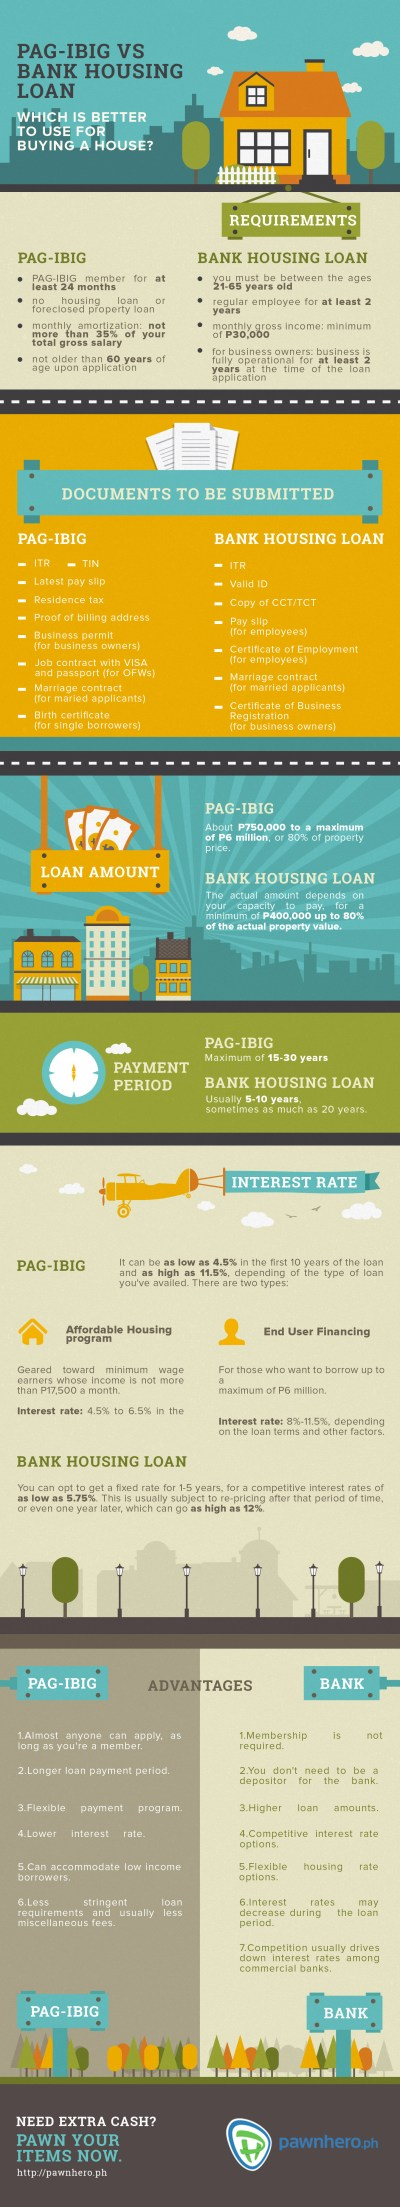 PAG-IBIG VS Bank Housing Loan: Which is Better to Use for Buying a House? [Infographic ...